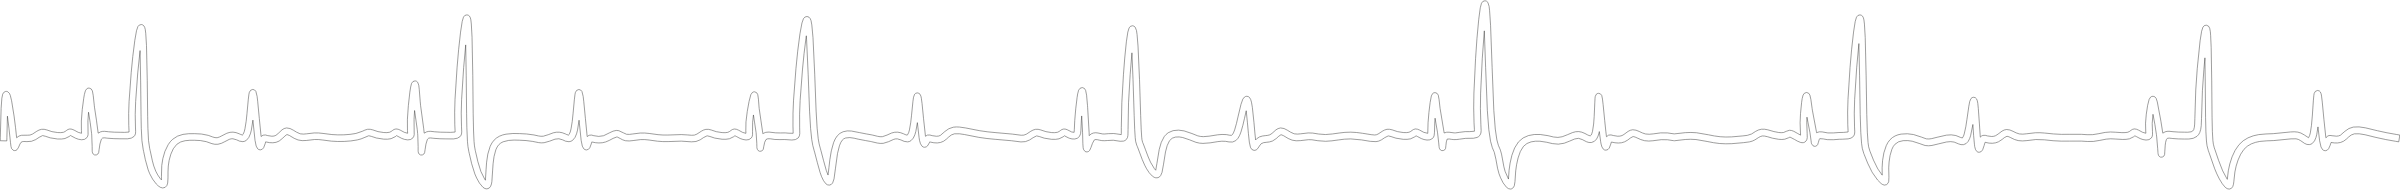 Electrocardiogram Line by pogoneo